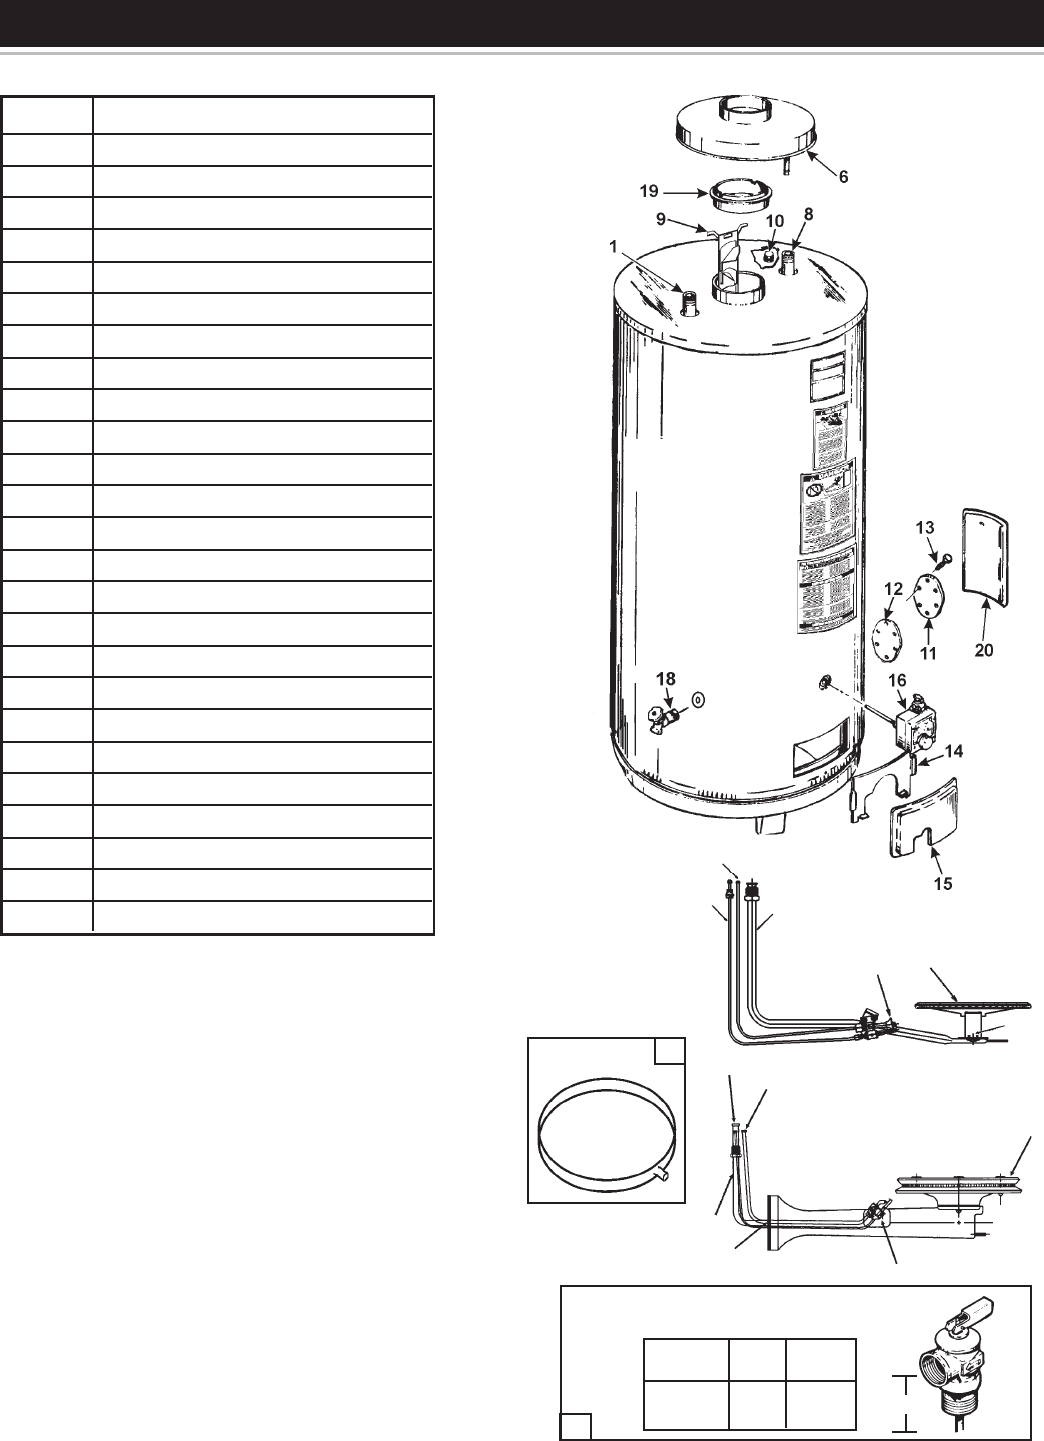 Reliance 606 Electric Water Heater Parts Diagram